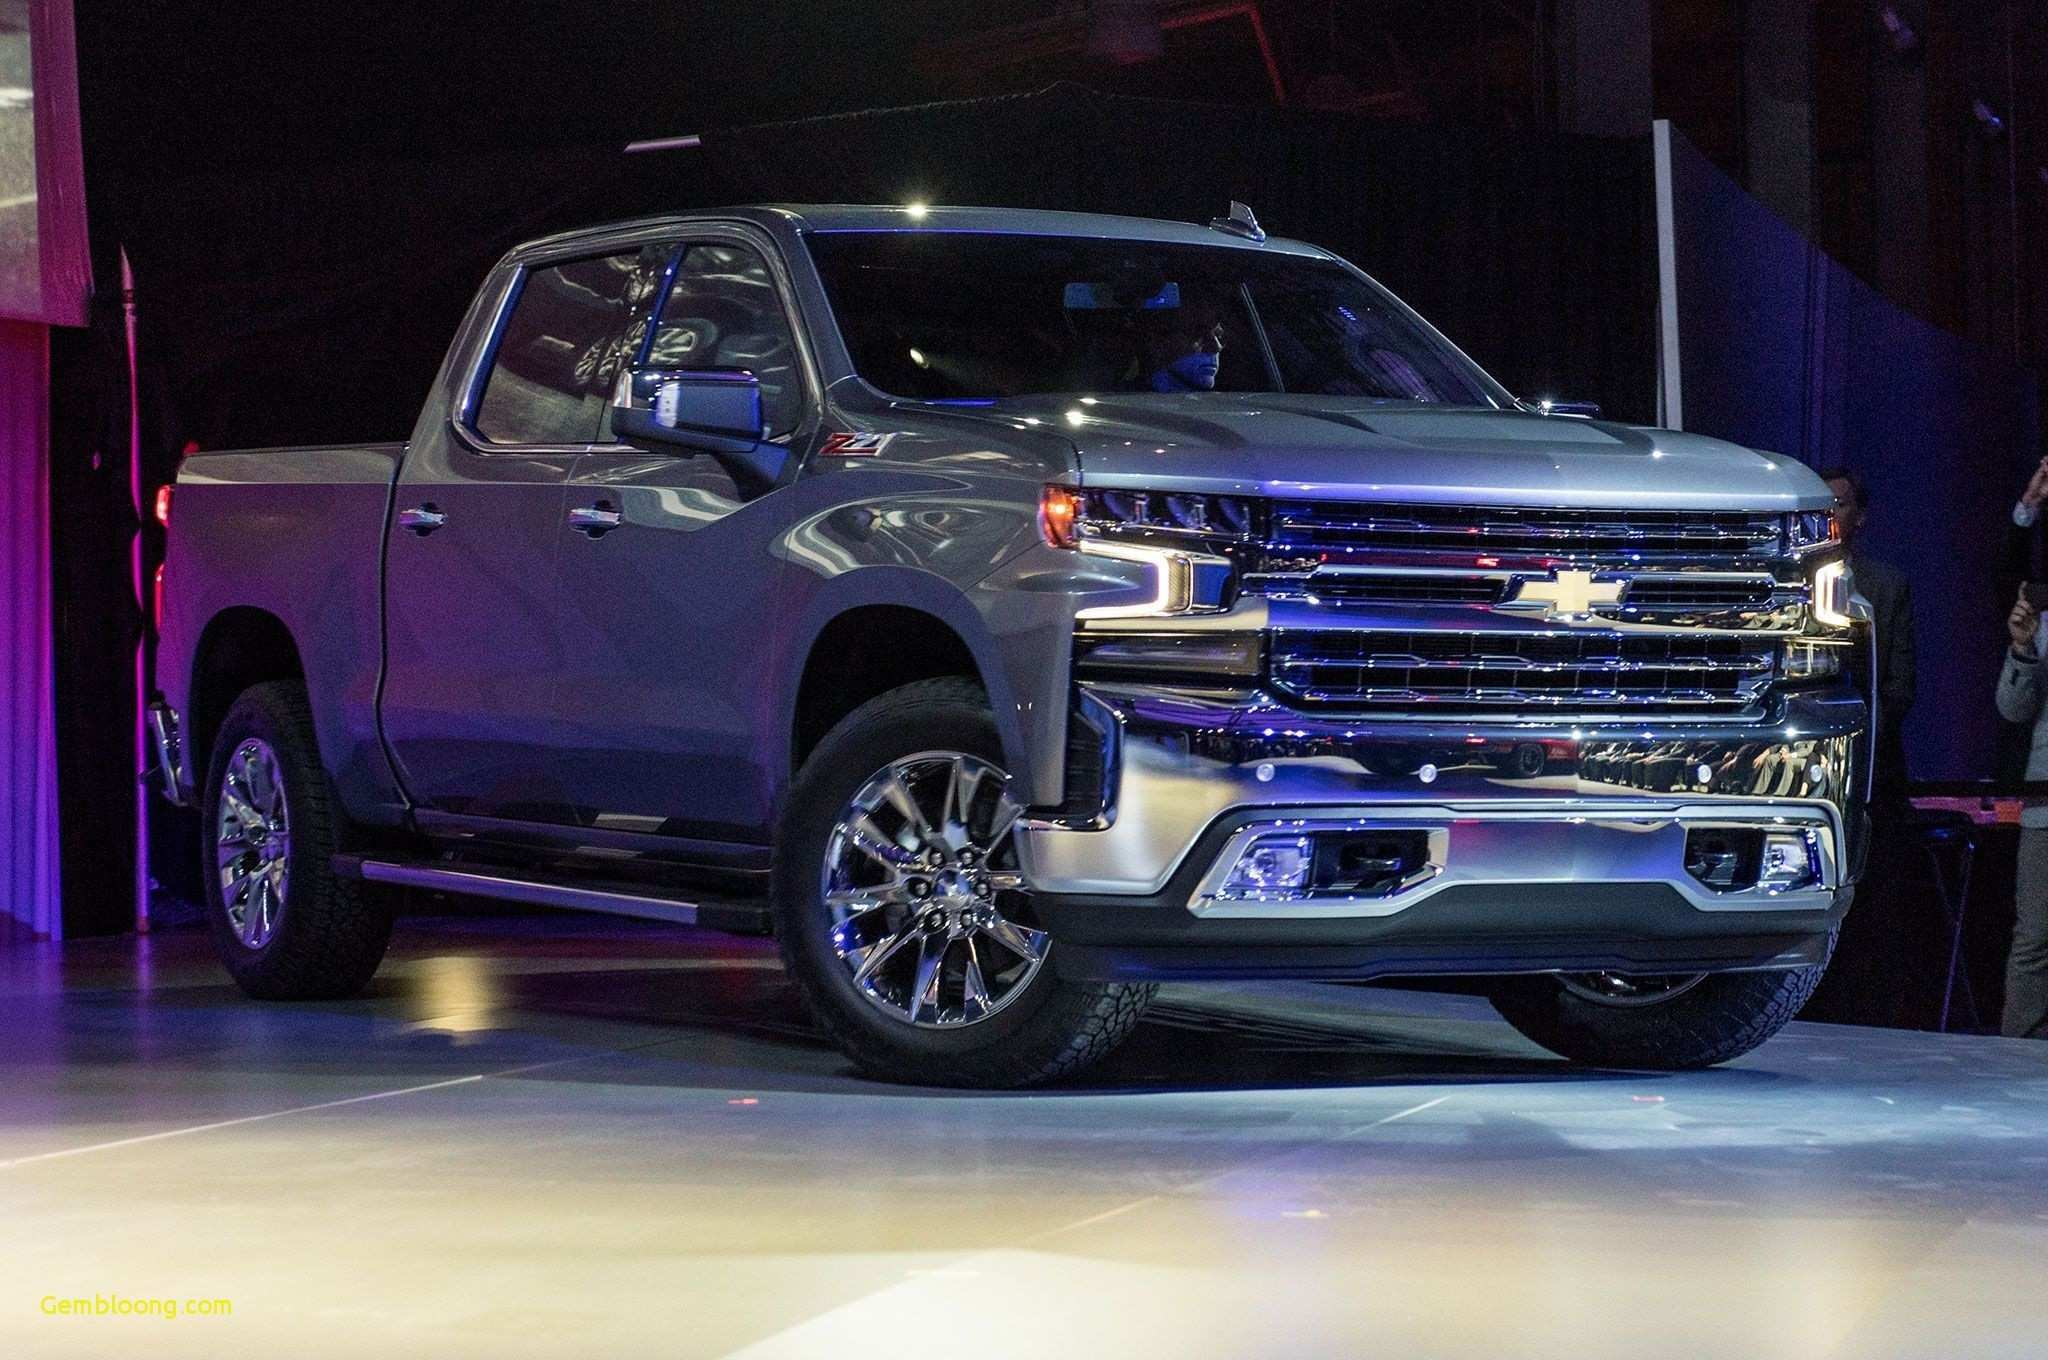 77 New The 2019 Chevrolet Duramax Specs Price And Release Date Specs for The 2019 Chevrolet Duramax Specs Price And Release Date